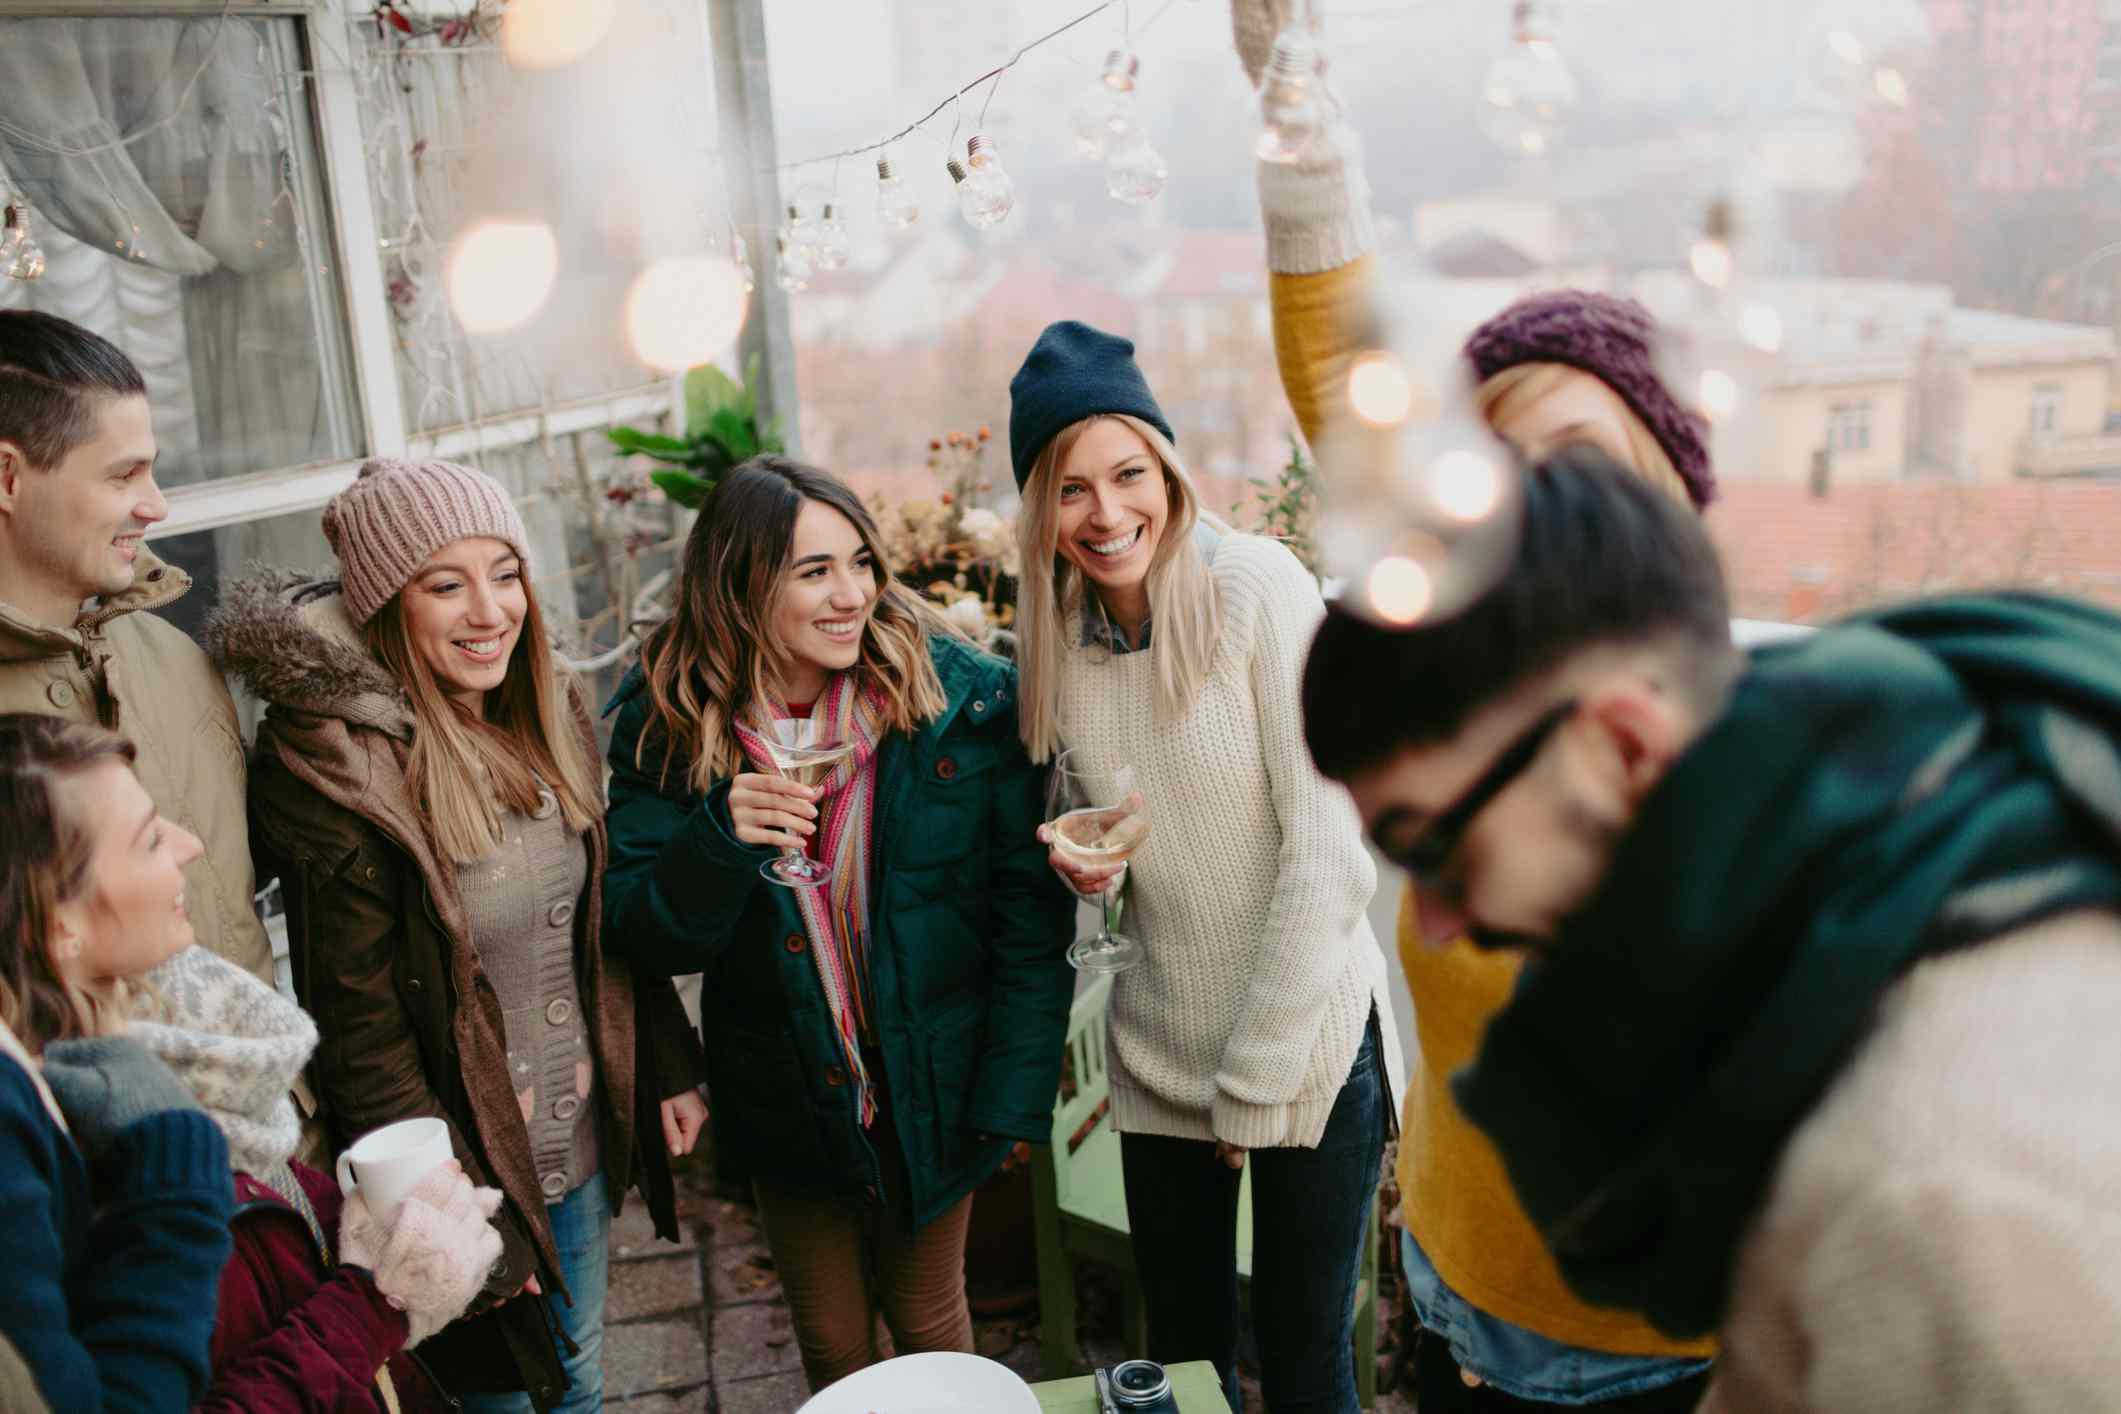 Group of friends with beverages in winter clothes at an outdoor party